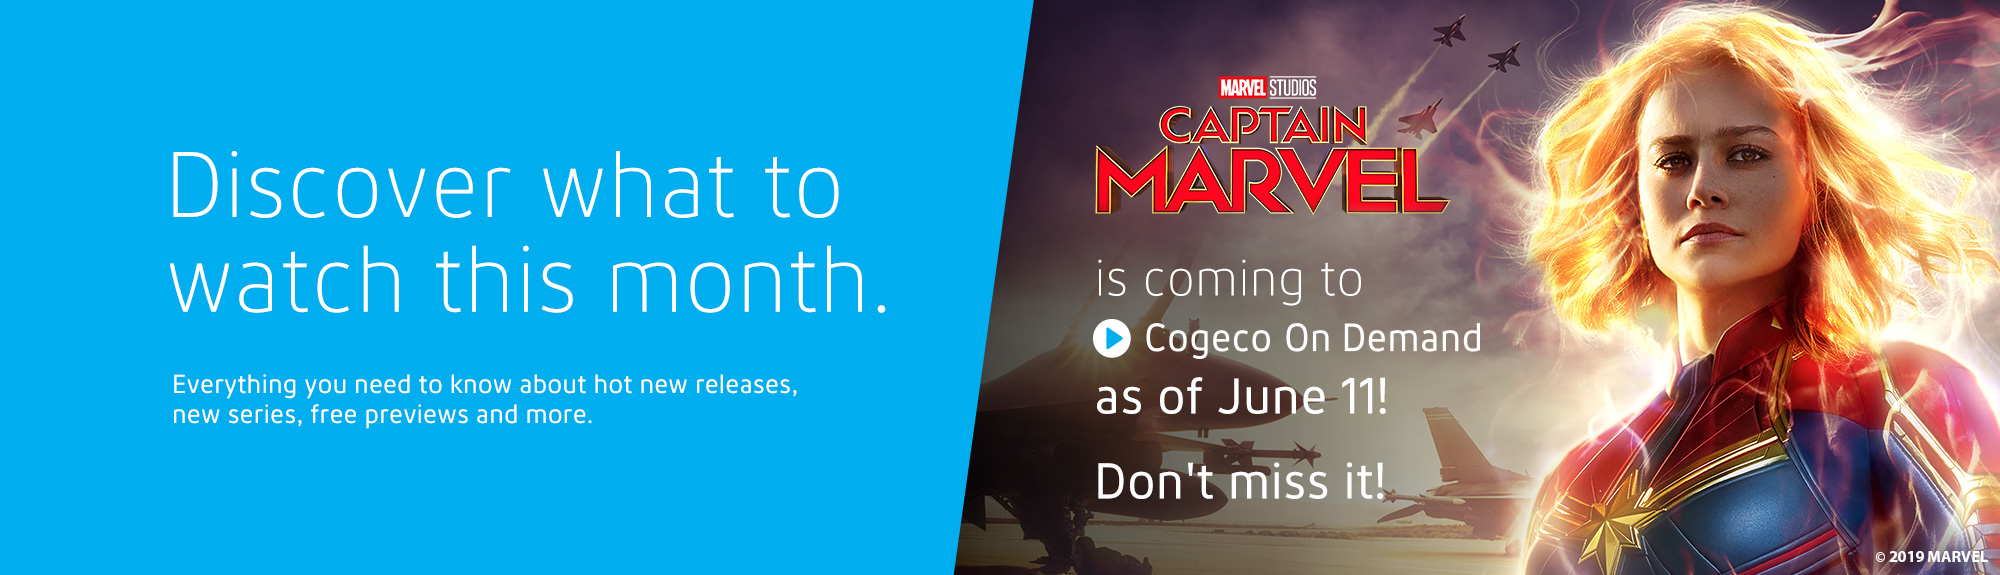 Discover what to watch this month. Everything you need to know about hot new releases, new series, free previews and more. Captain Marvel is coming to Cogeco On Demand as of June 11! Don't miss it!